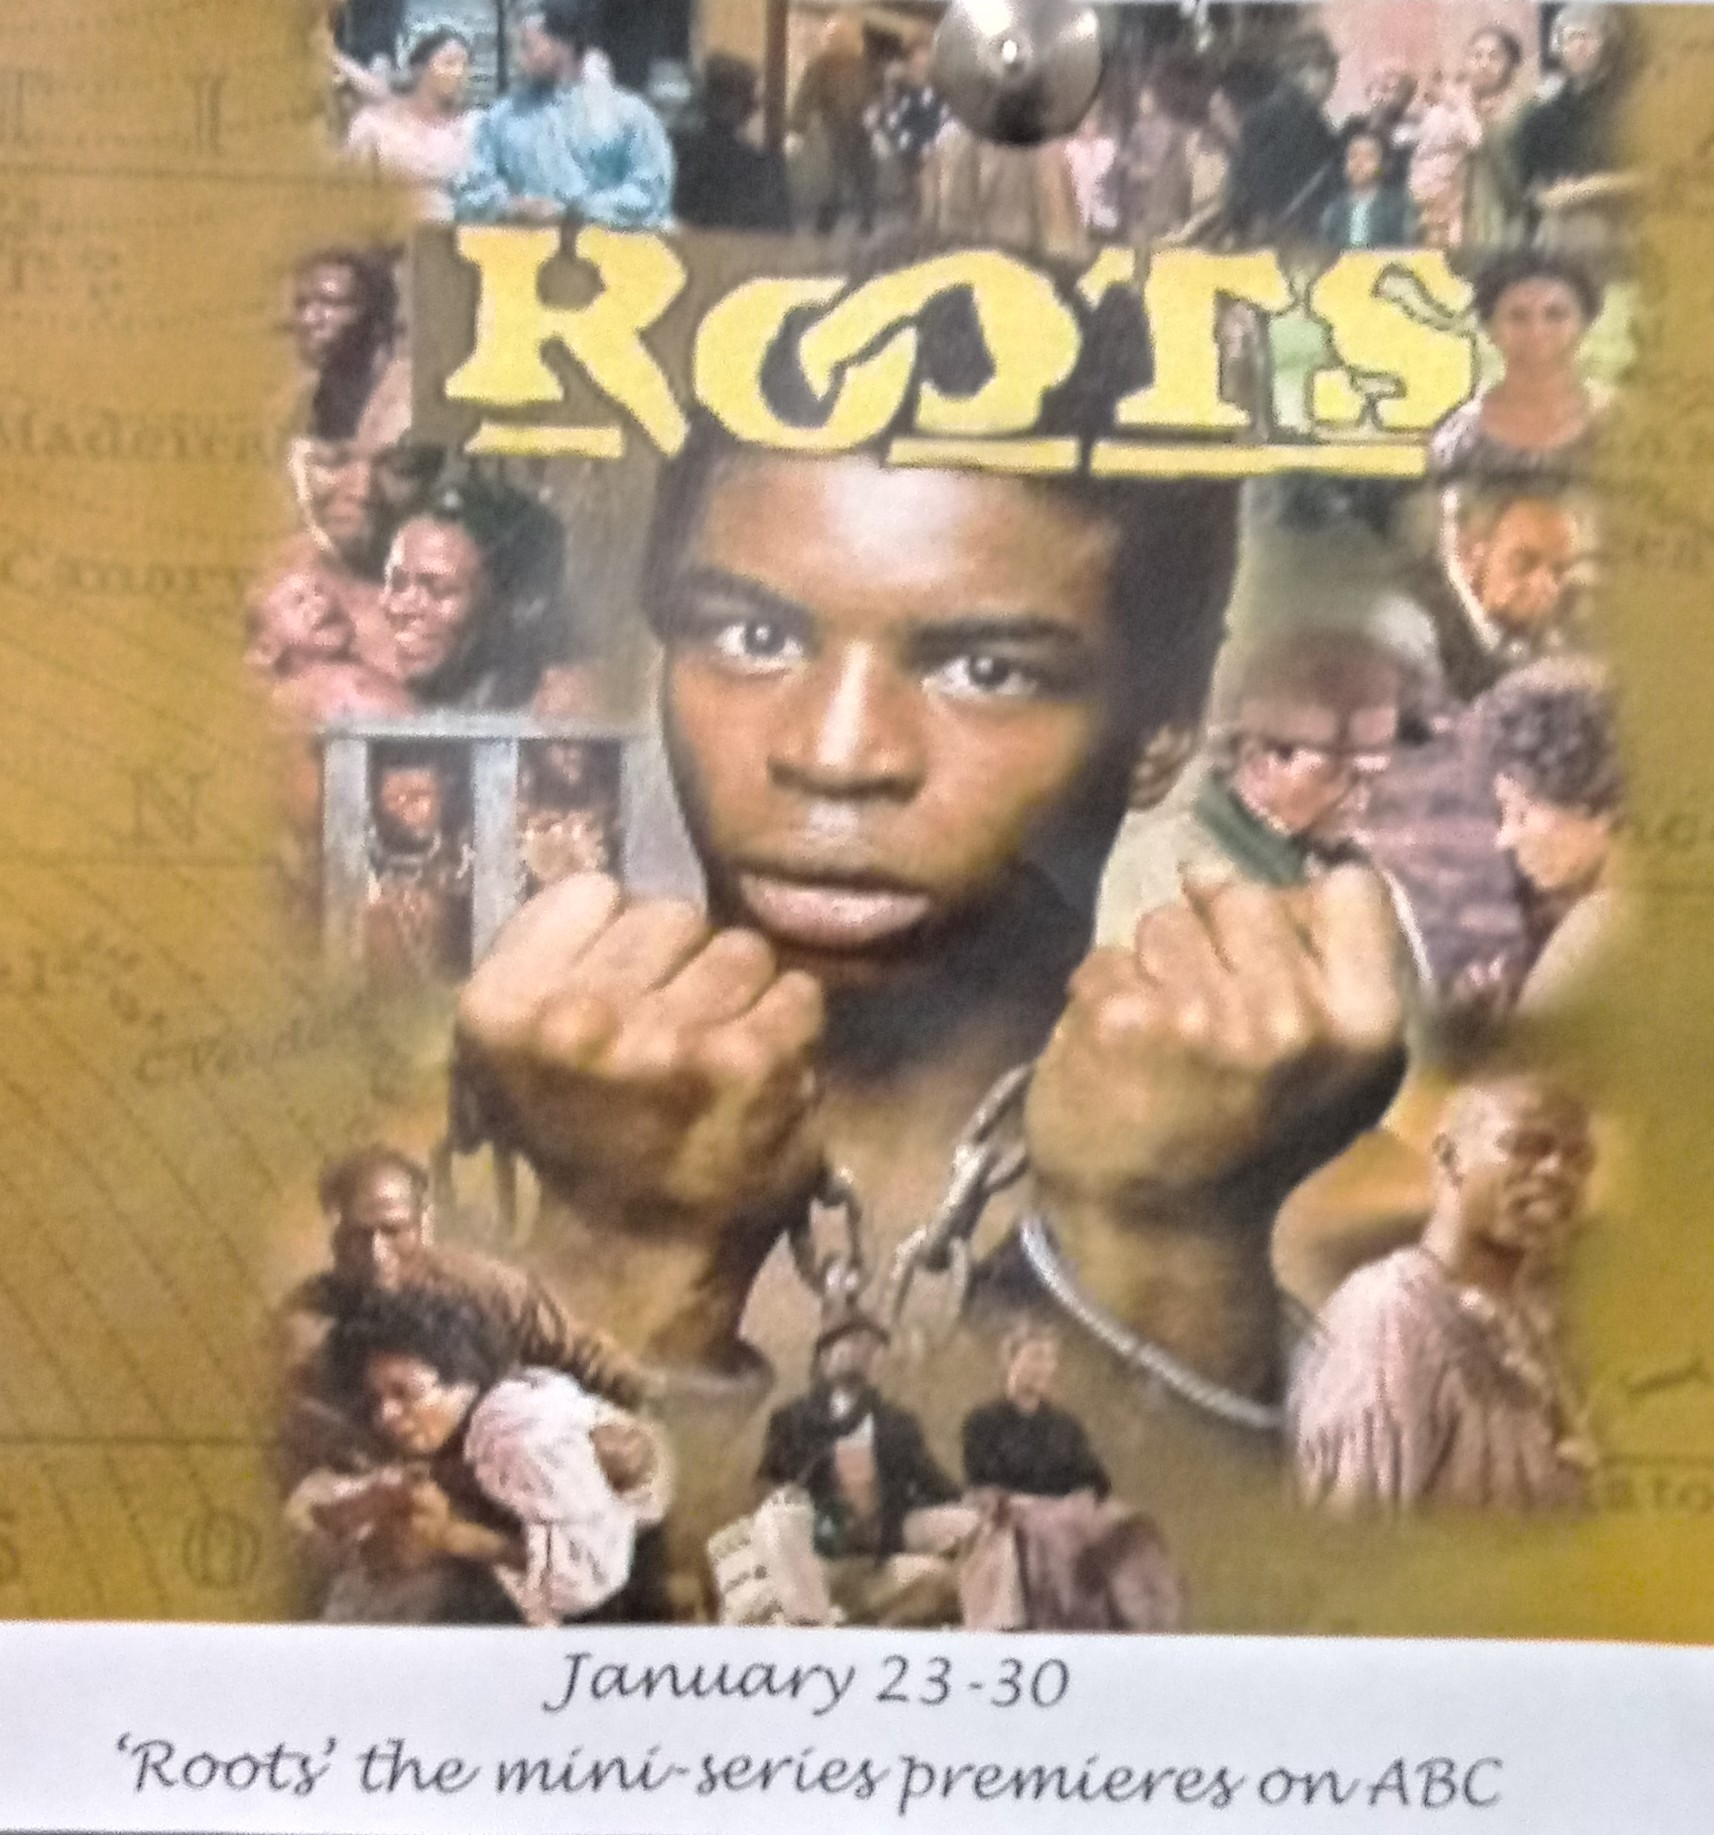 Photograph of the Roots mini-series protagonist, Kunta Kinte,  with fetters on his wrists.